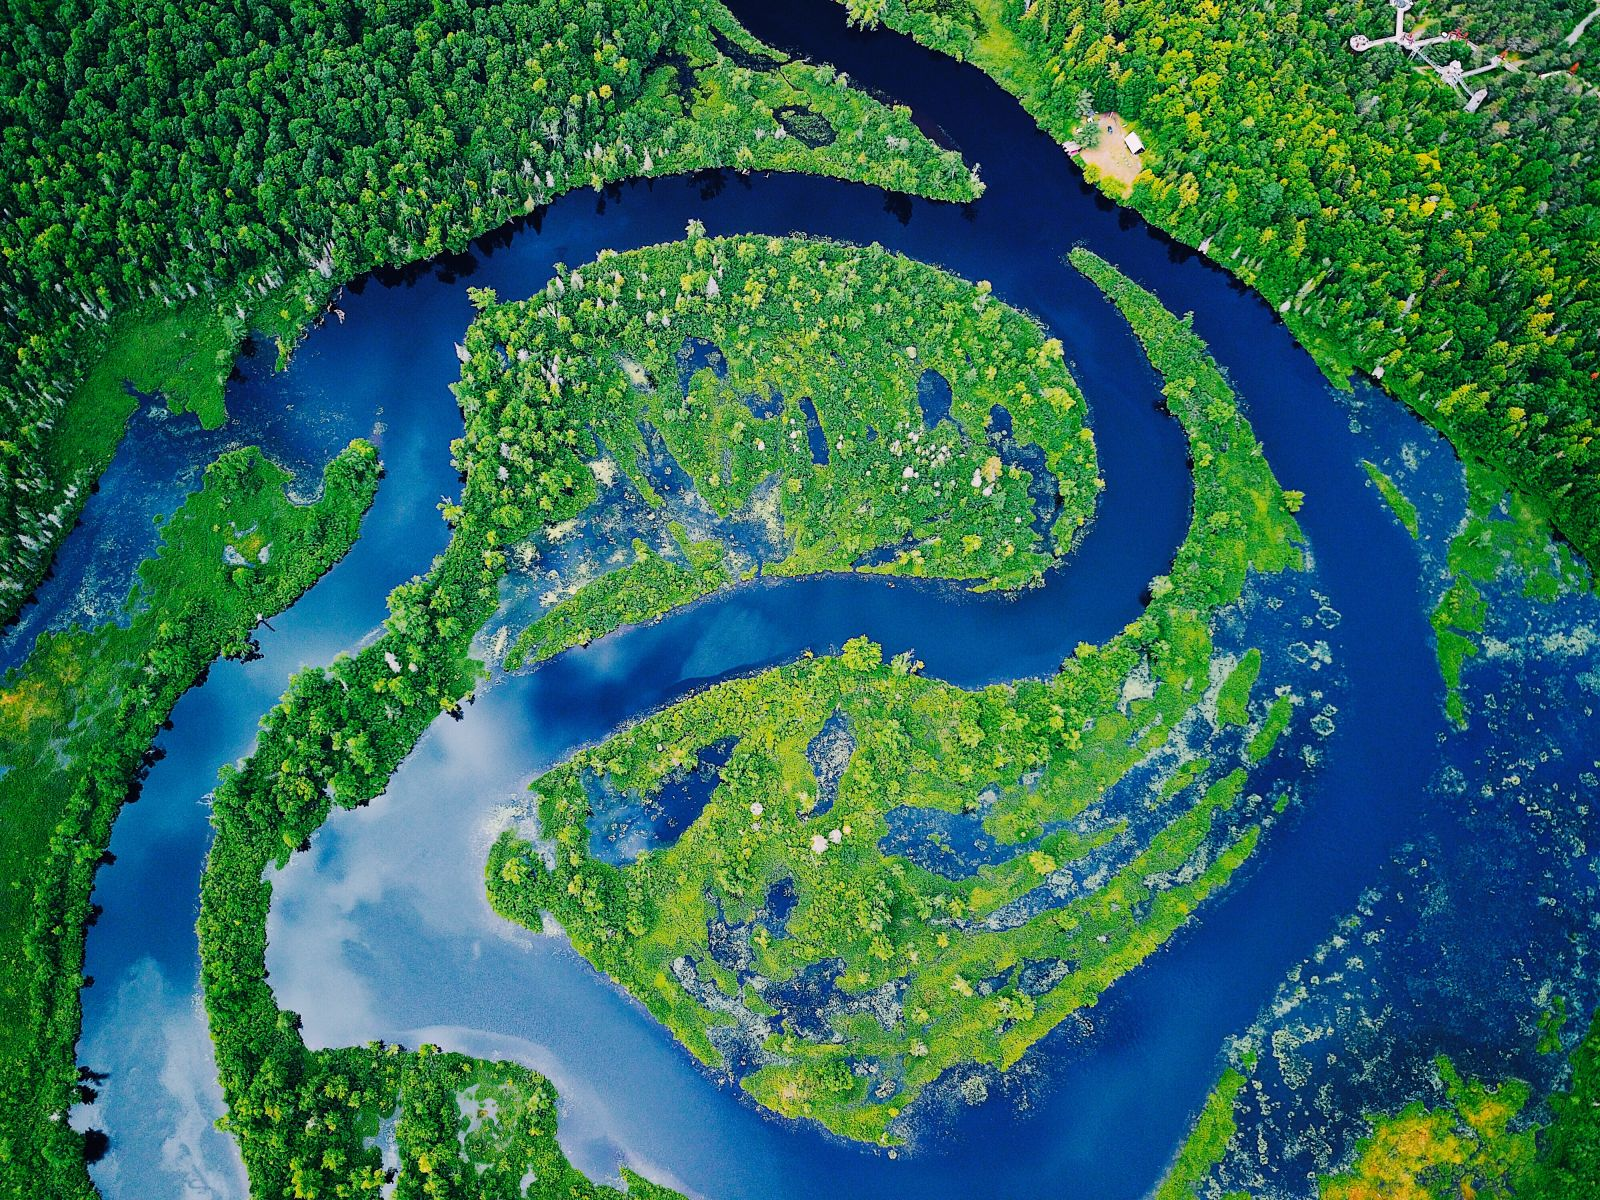 The Oxbow as seen in summer. Imagine it in the fall?